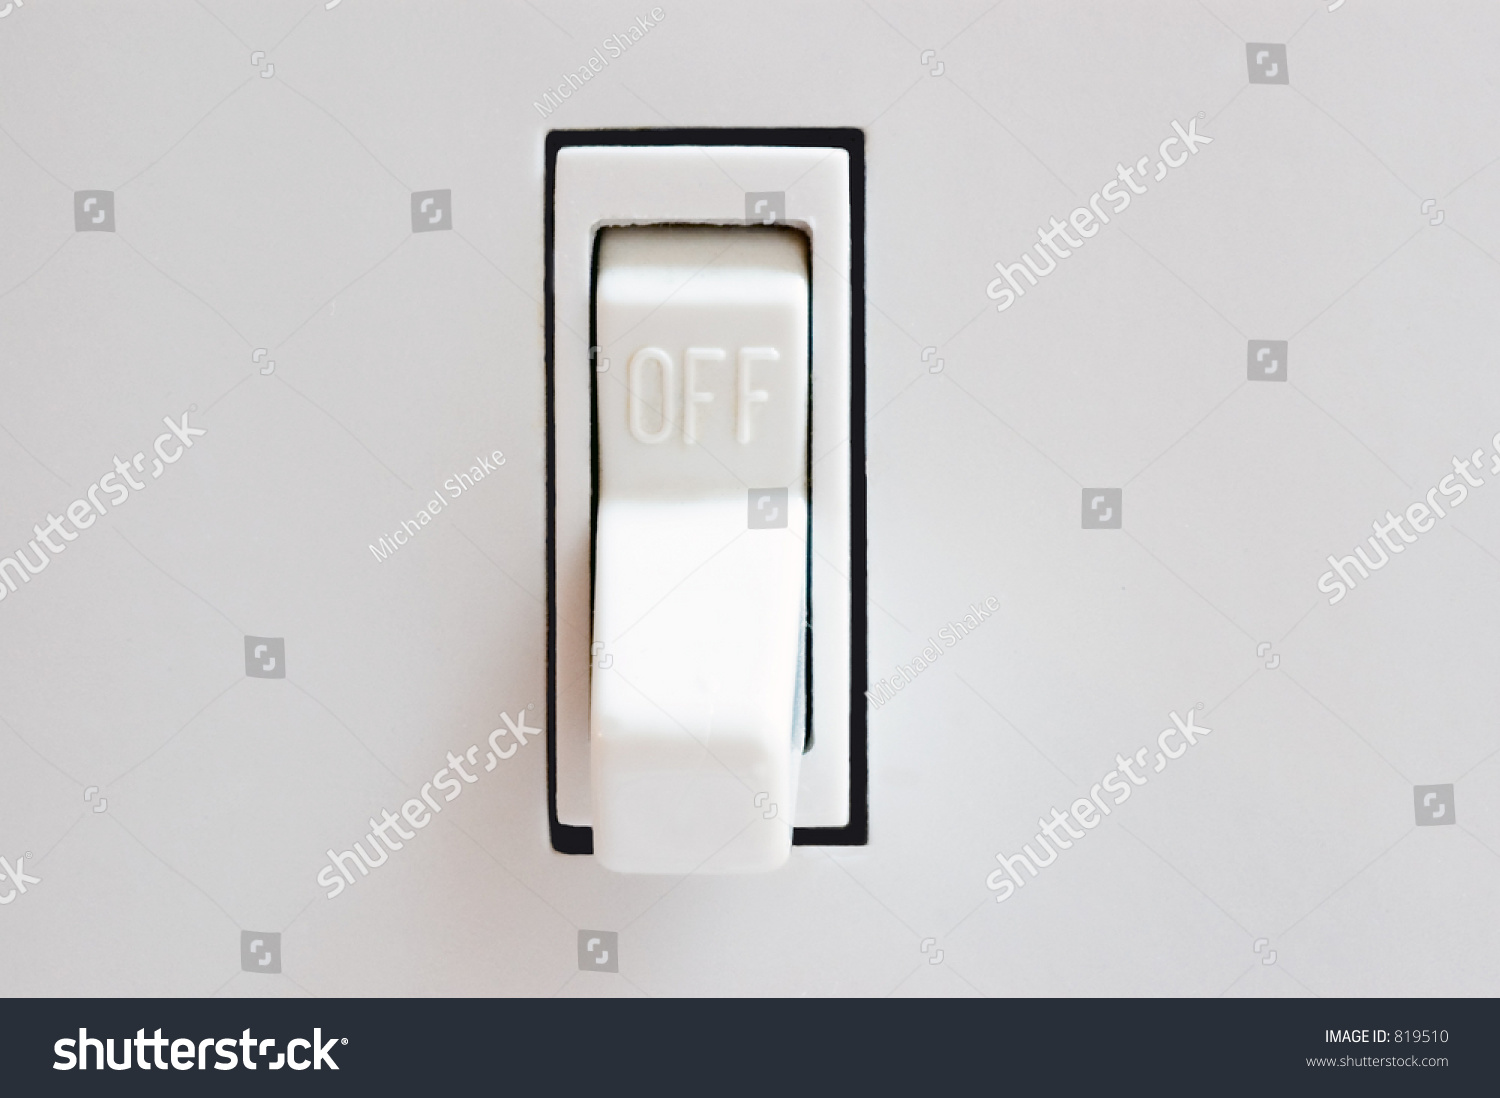 Light Switch Off Position Stock Photo 819510 - Shutterstock for Light Switch Off Position  143gtk